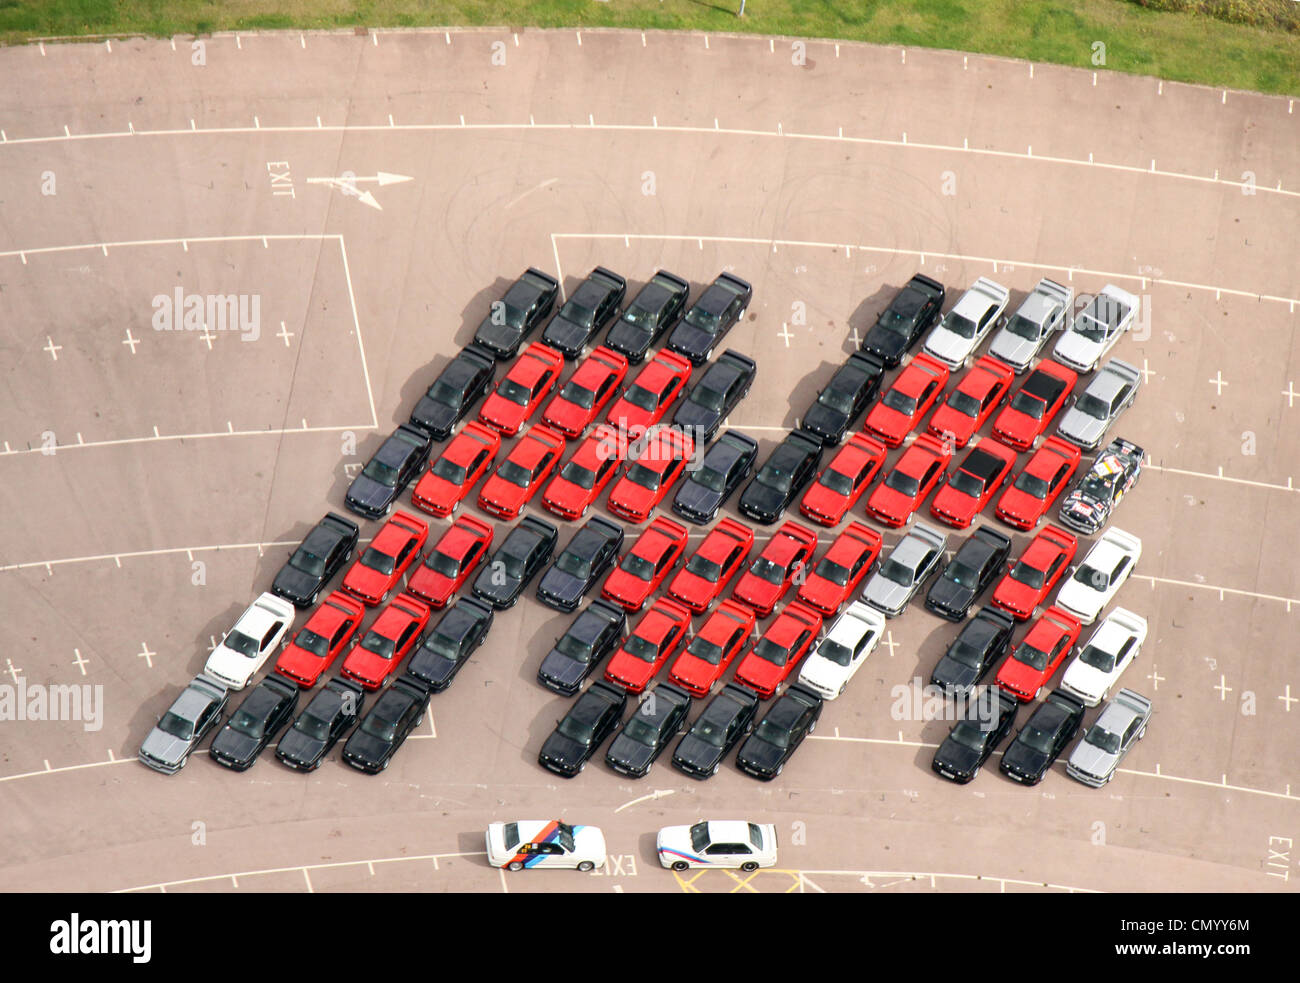 Aerial view of 66 M3 Series BMW Cars arranged into an M Shape to emulate an image taken in Germany decades ago. - Stock Image